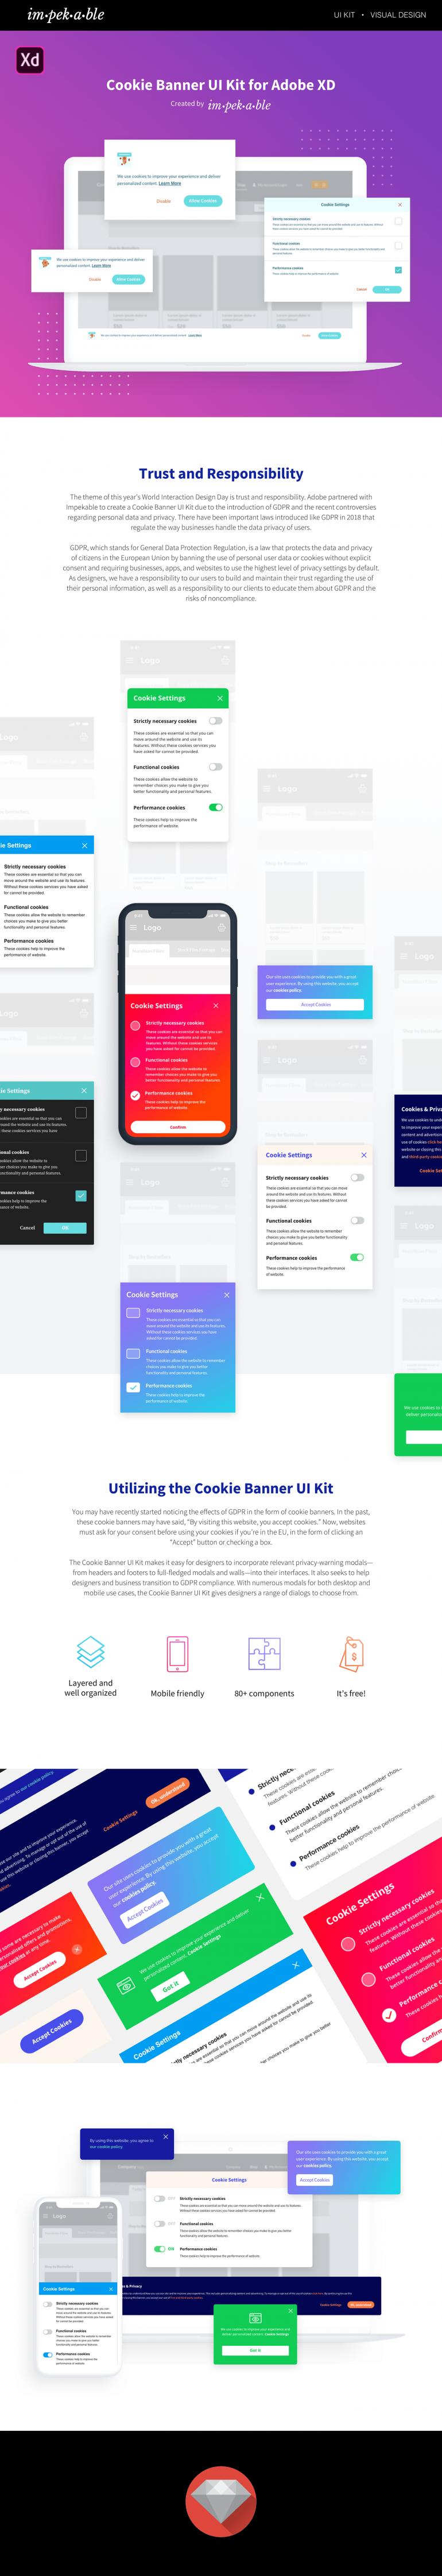 Cookie Banner UI Kit for Adobe XD